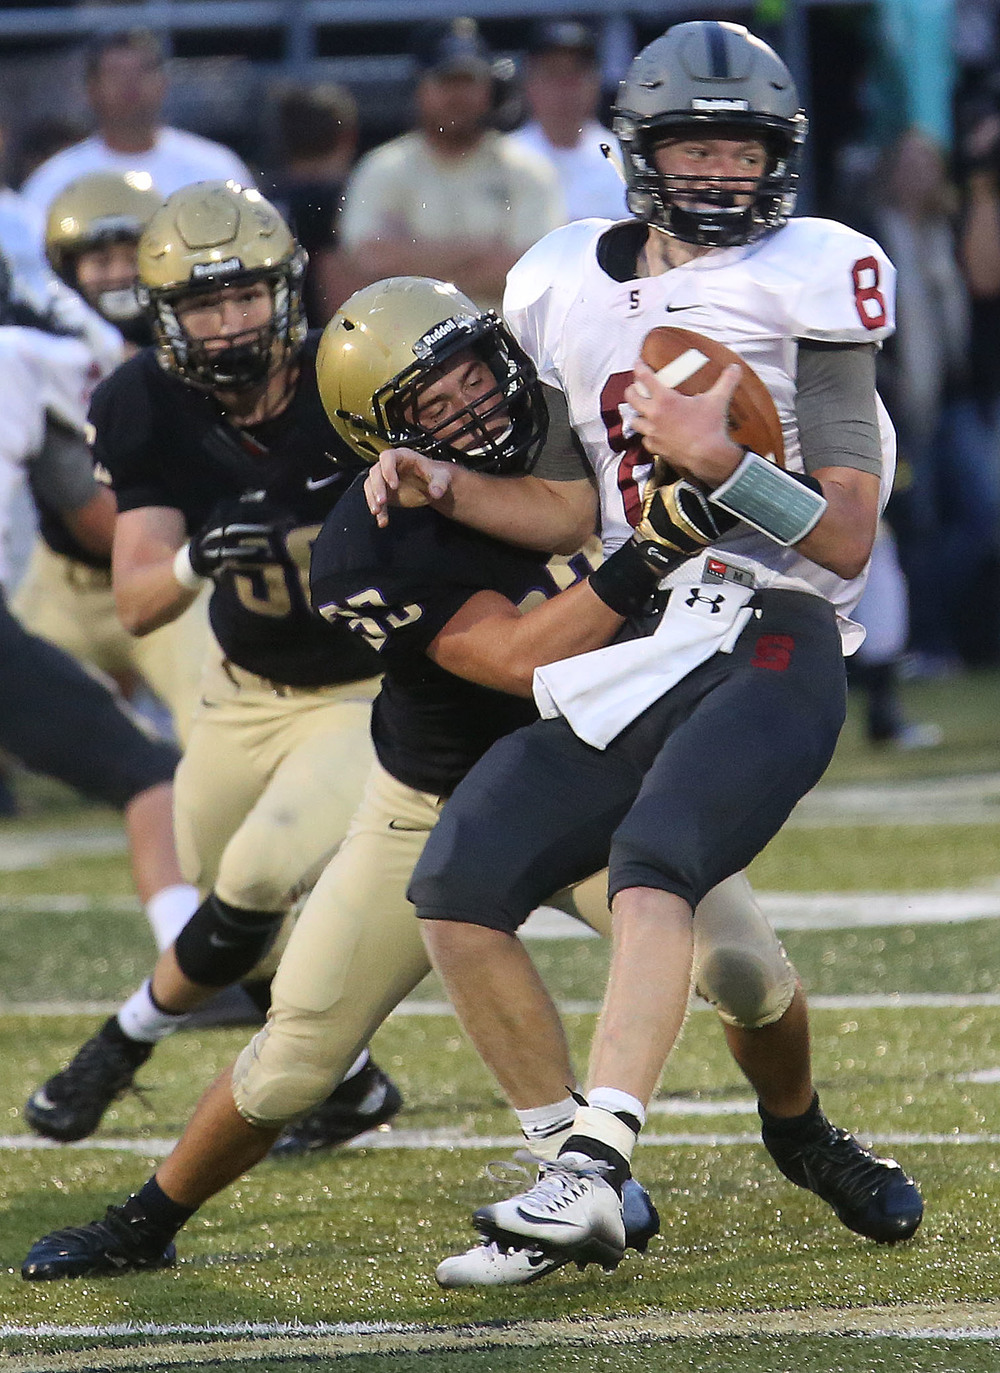 Senators quarterback Jackson Shearer is brought down by SHG defender Roger Dondanville. David Spencer/The State Journal-Register